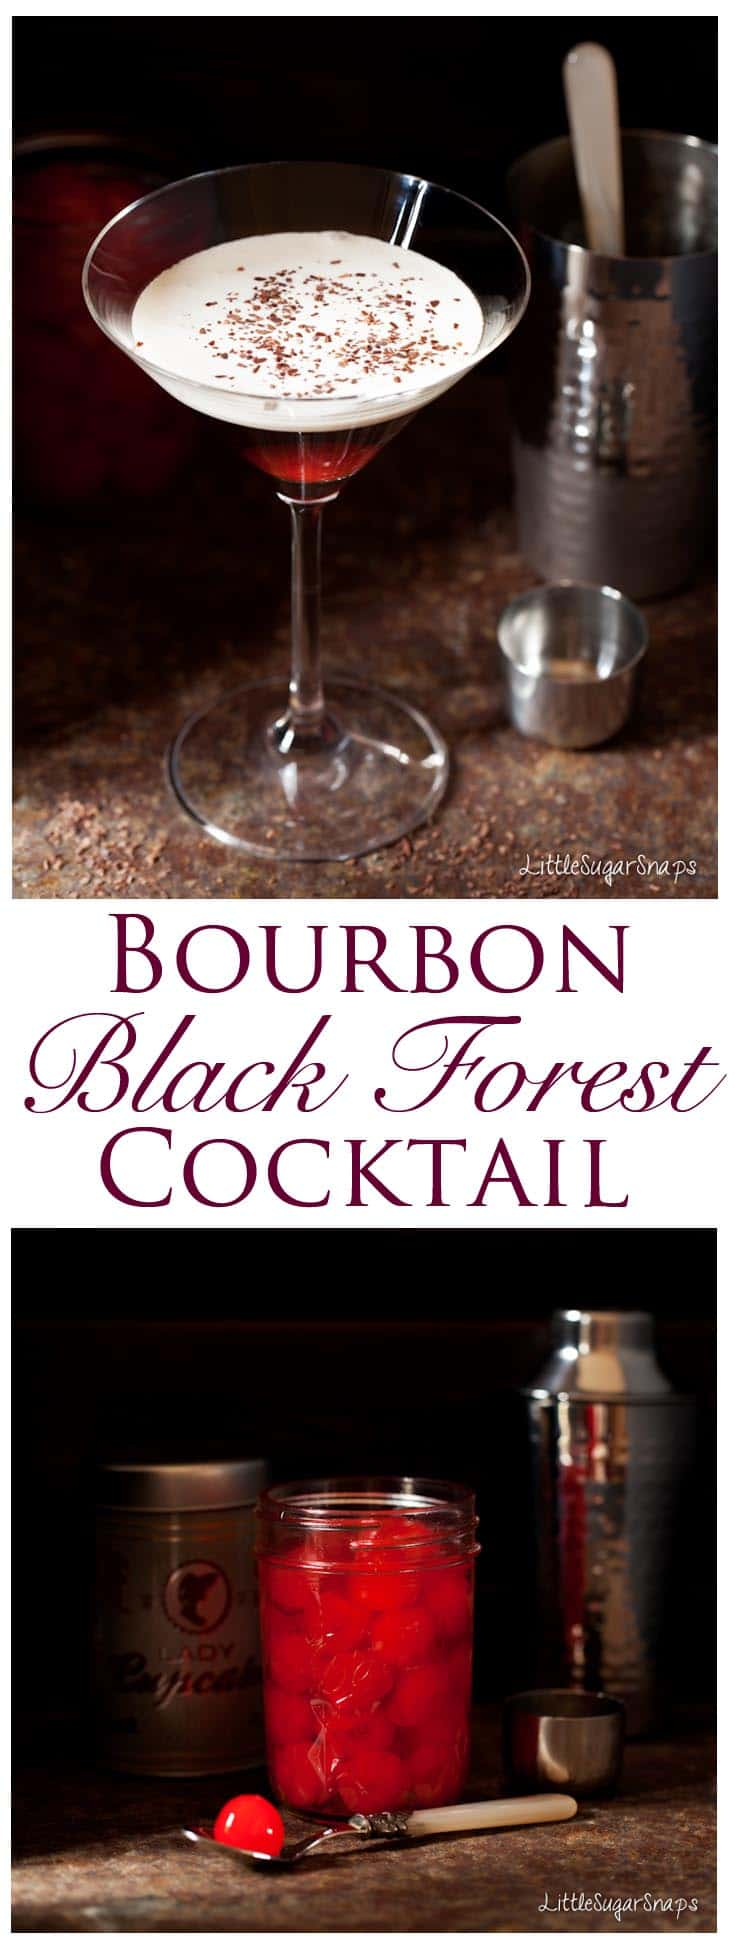 This Bourbon Black Forest Cocktail is loaded with chocolate and cherry flavours. Deeply warming. Pleasantly sweet. It's a particularly stylish winter drink.